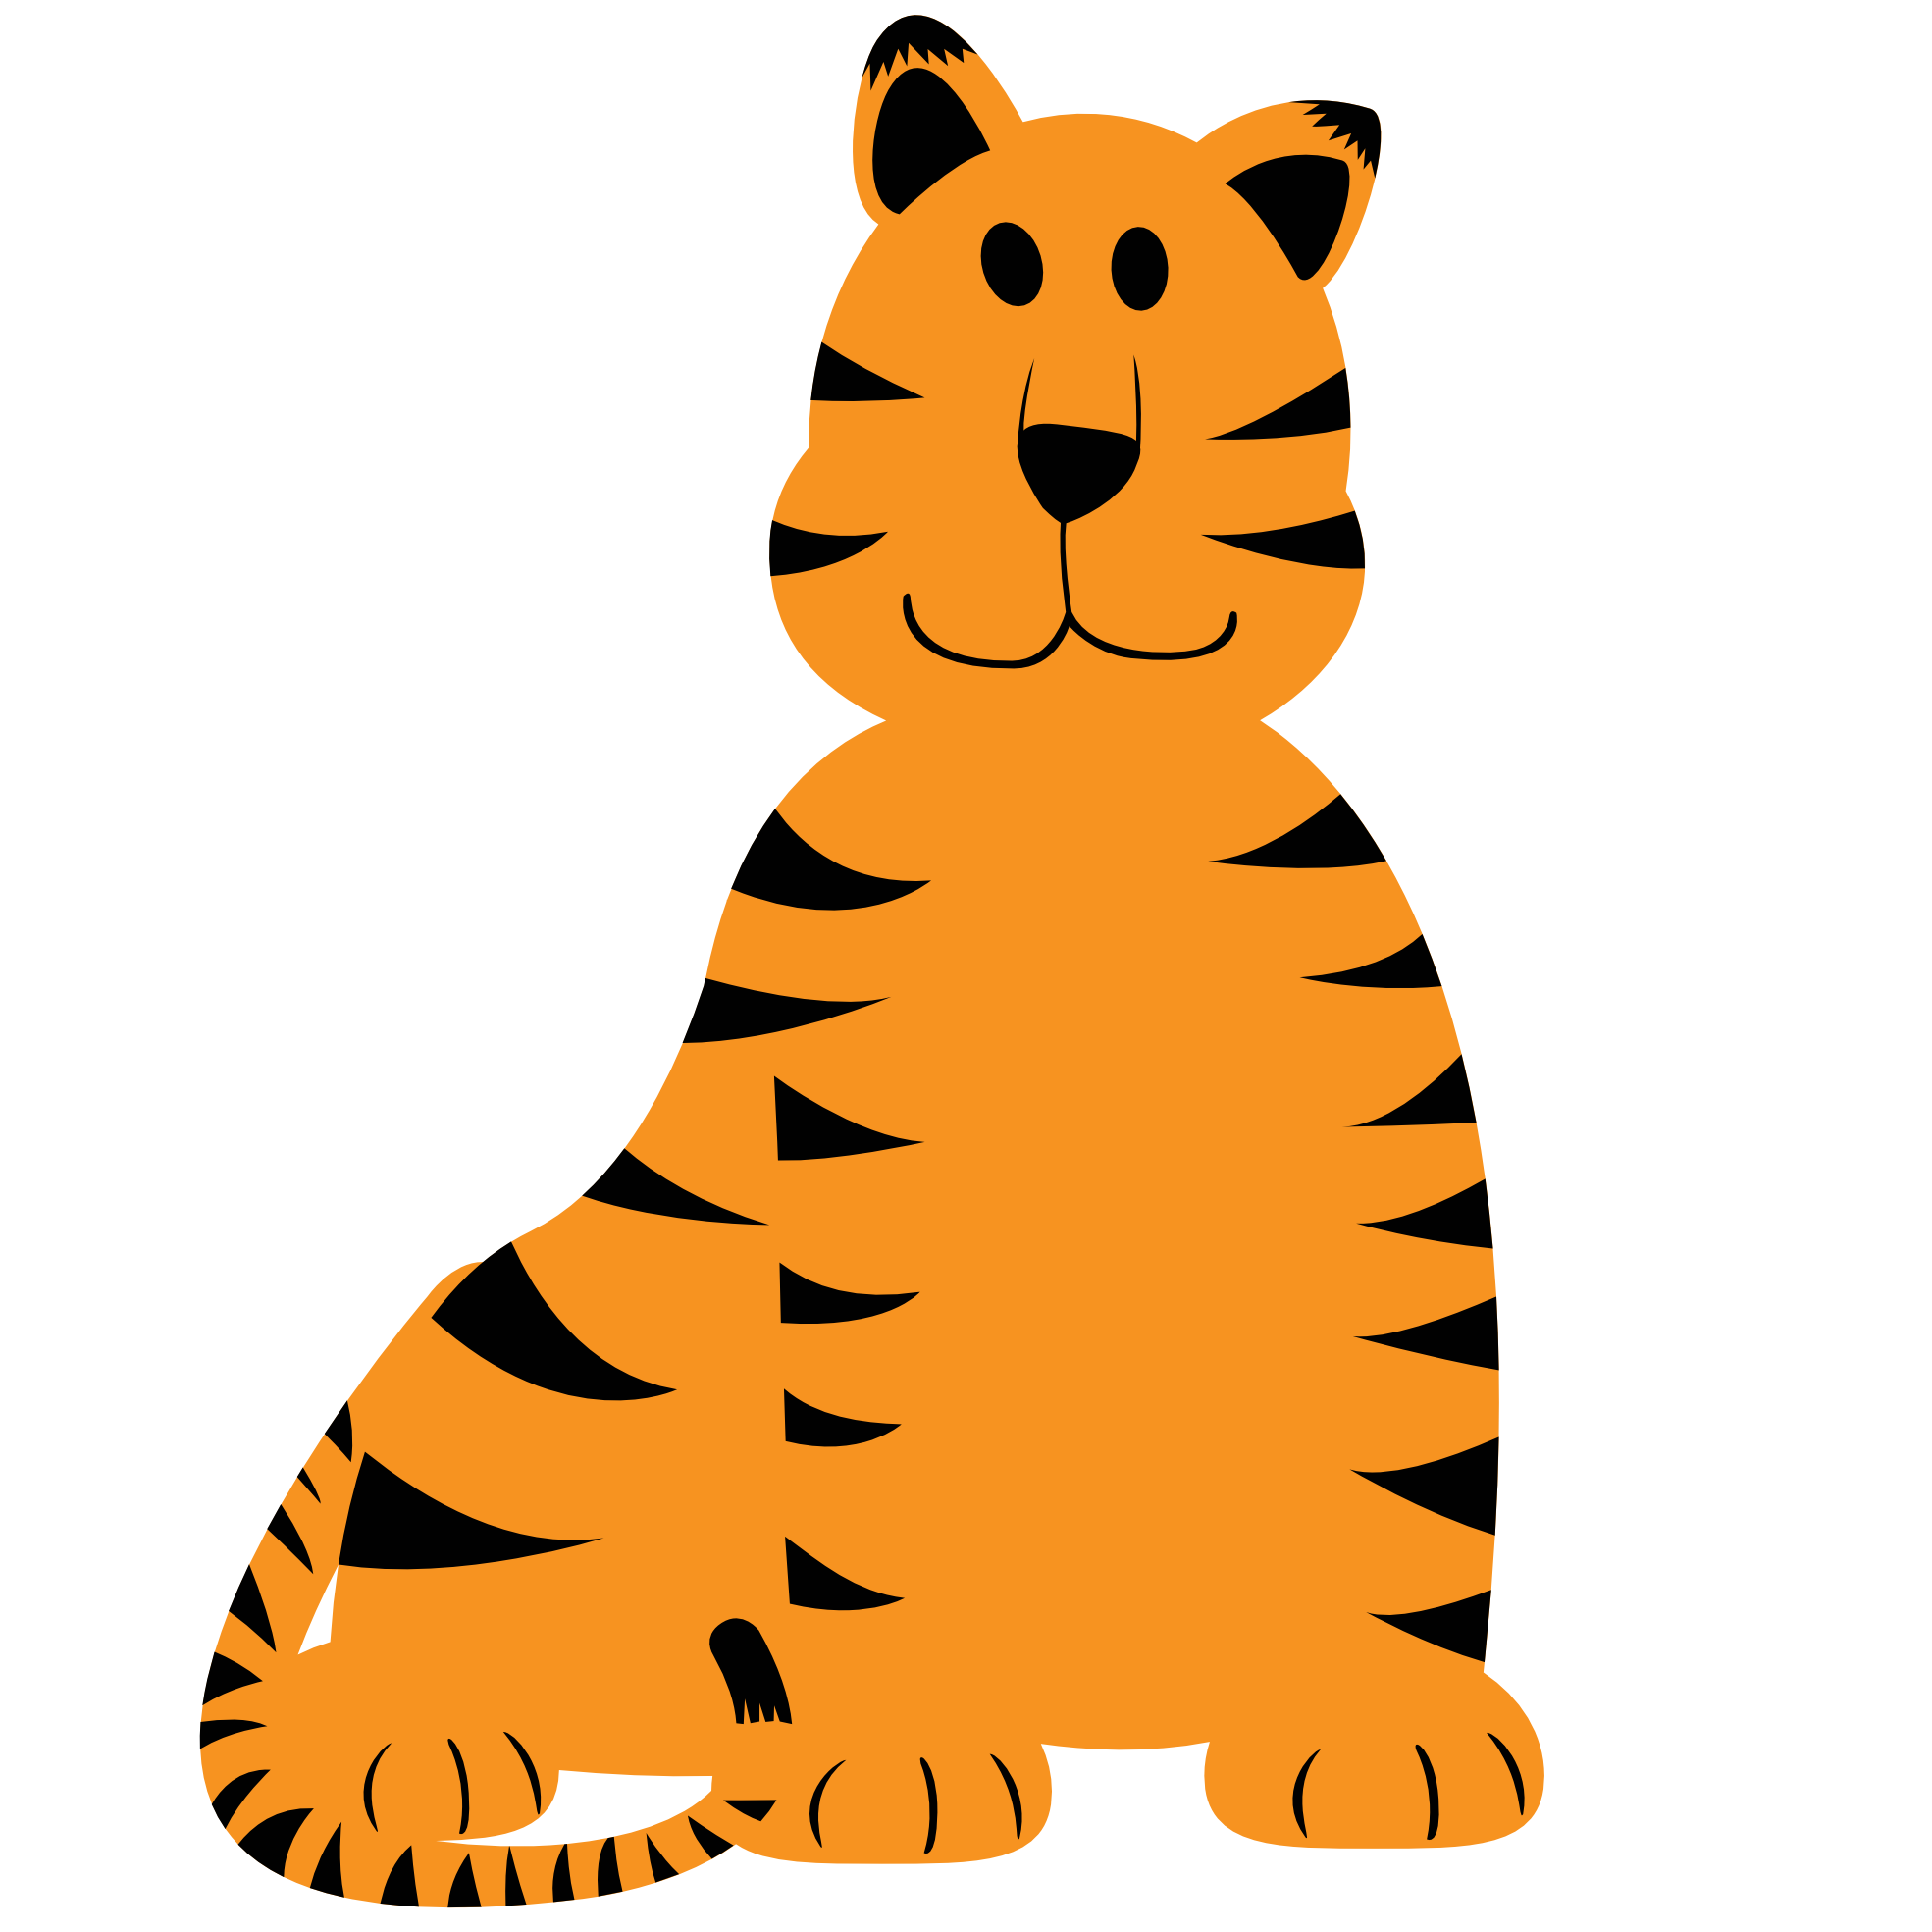 Stuffed cat clipart graphic download Baby Tiger Clipart at GetDrawings.com | Free for personal use Baby ... graphic download